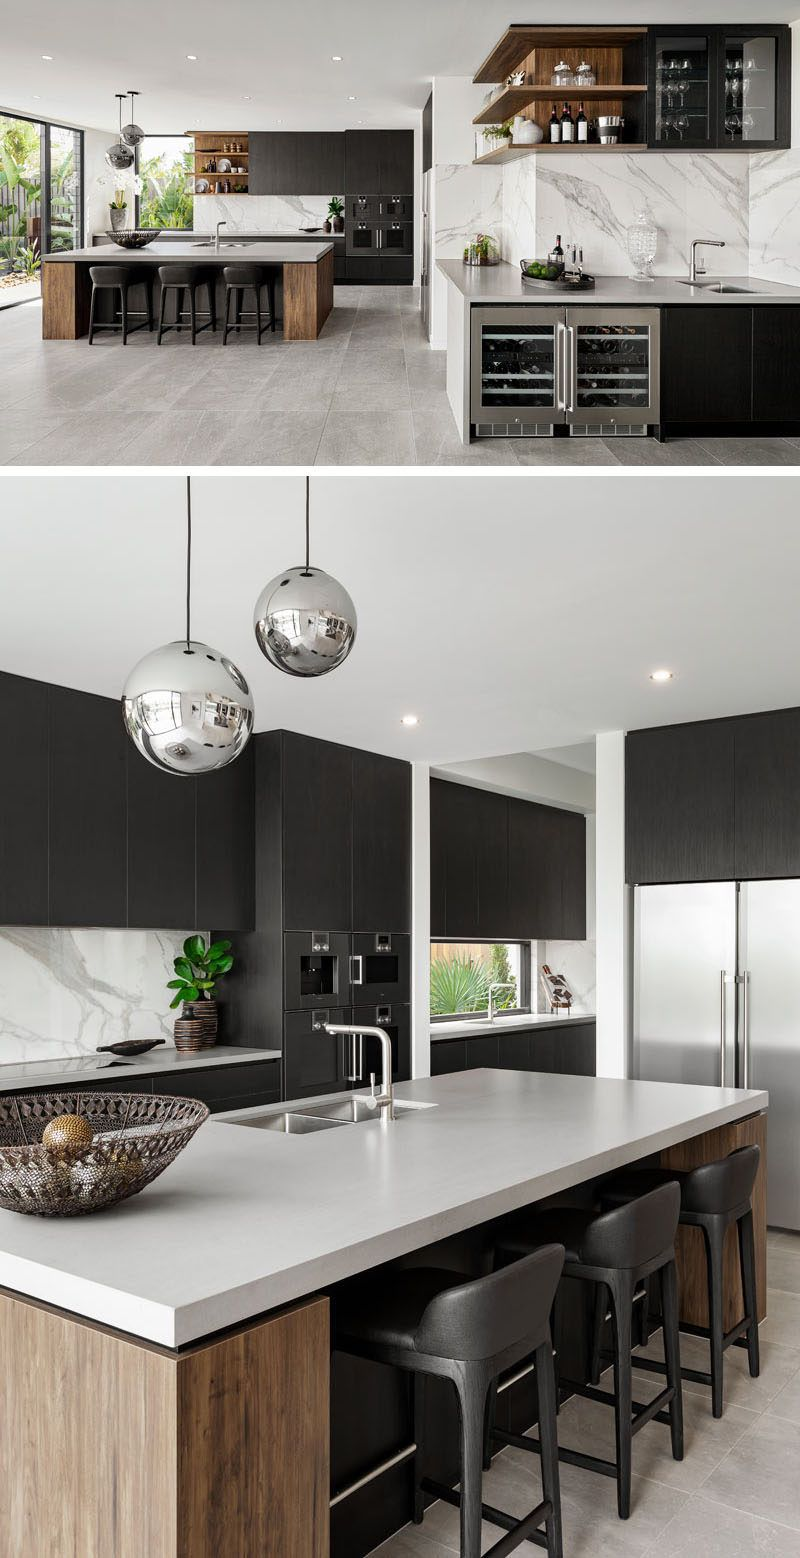 This modern kitchen, which is divided into two area, has the main kitchen with a large island, whil